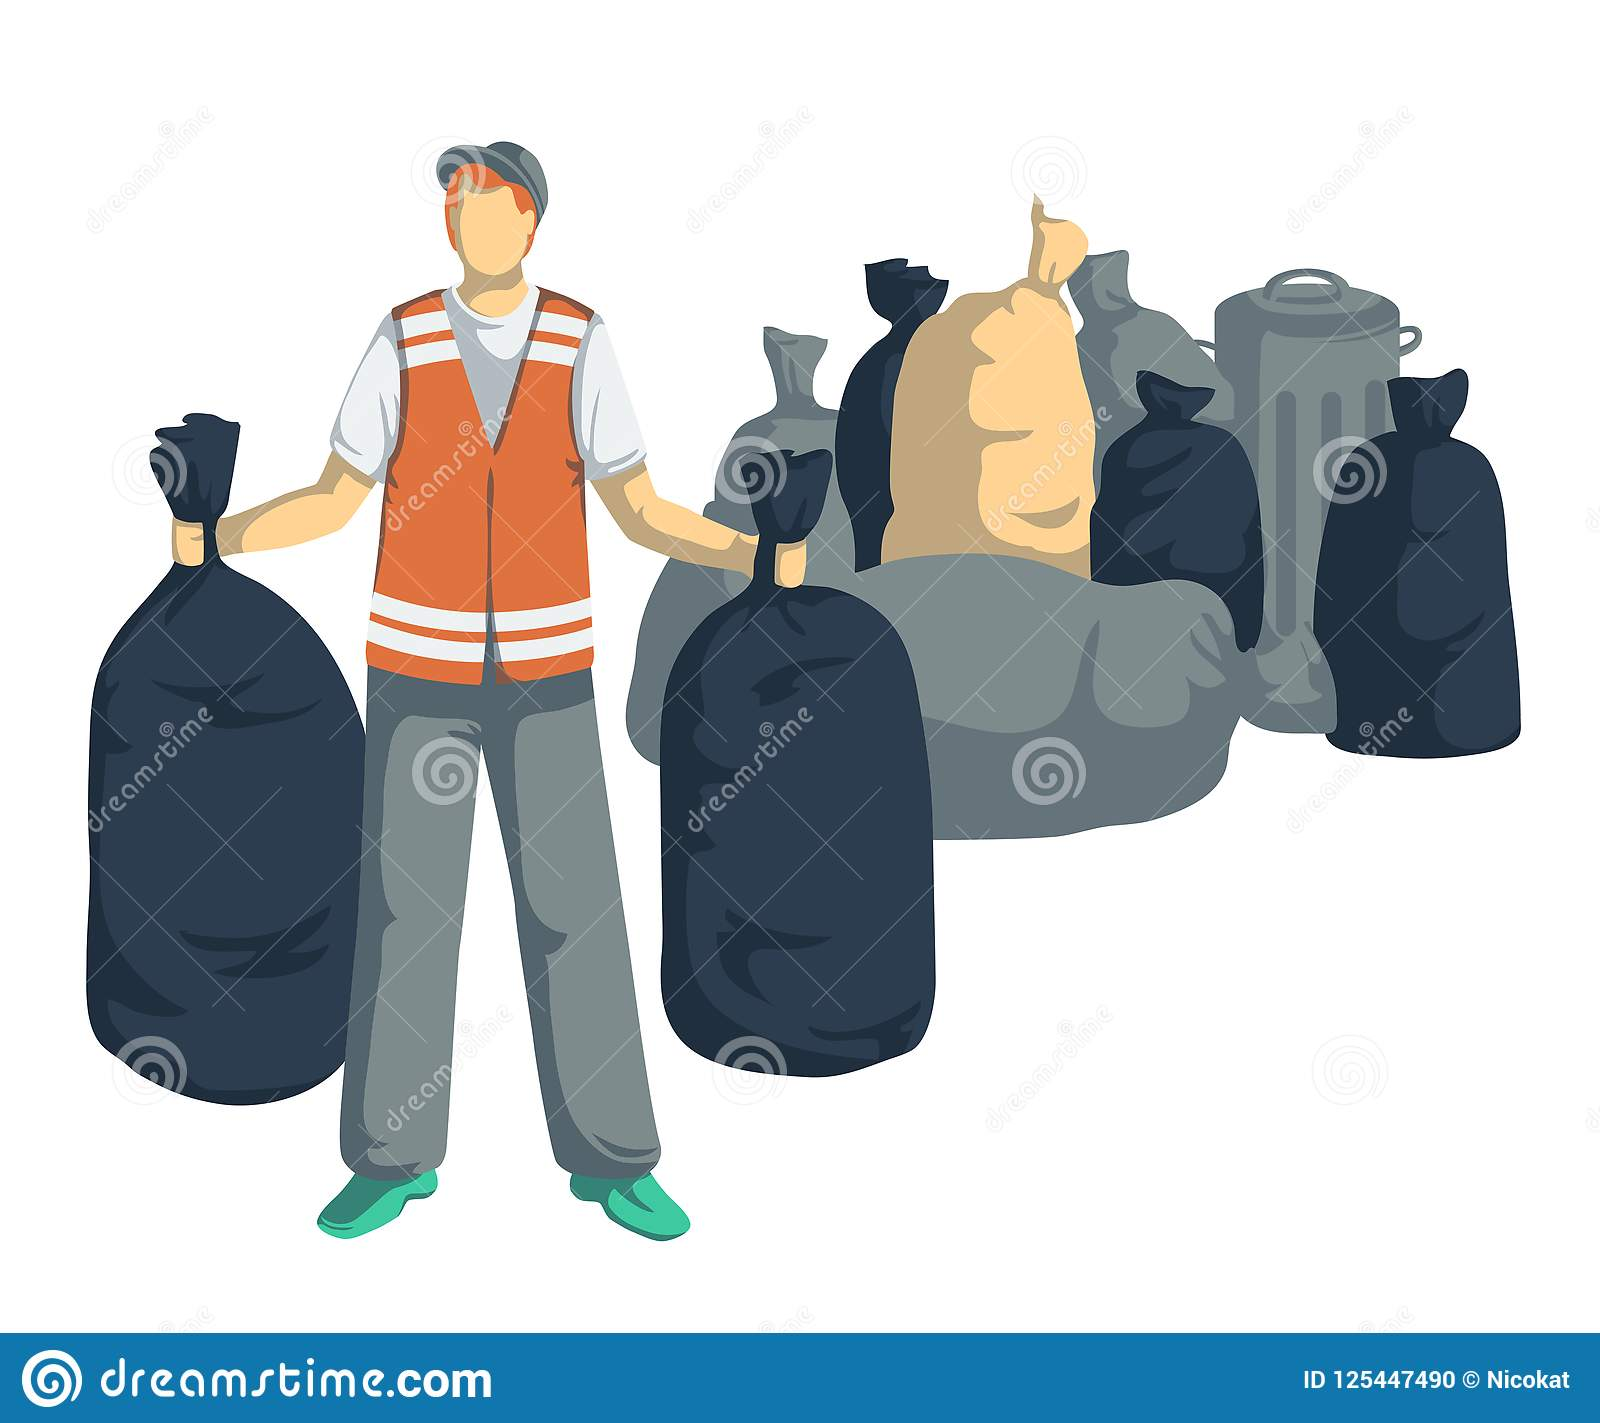 Garbage man with bags, cans, bins, containers of trash. Isolated objects on white background. Garbage recycling concept.